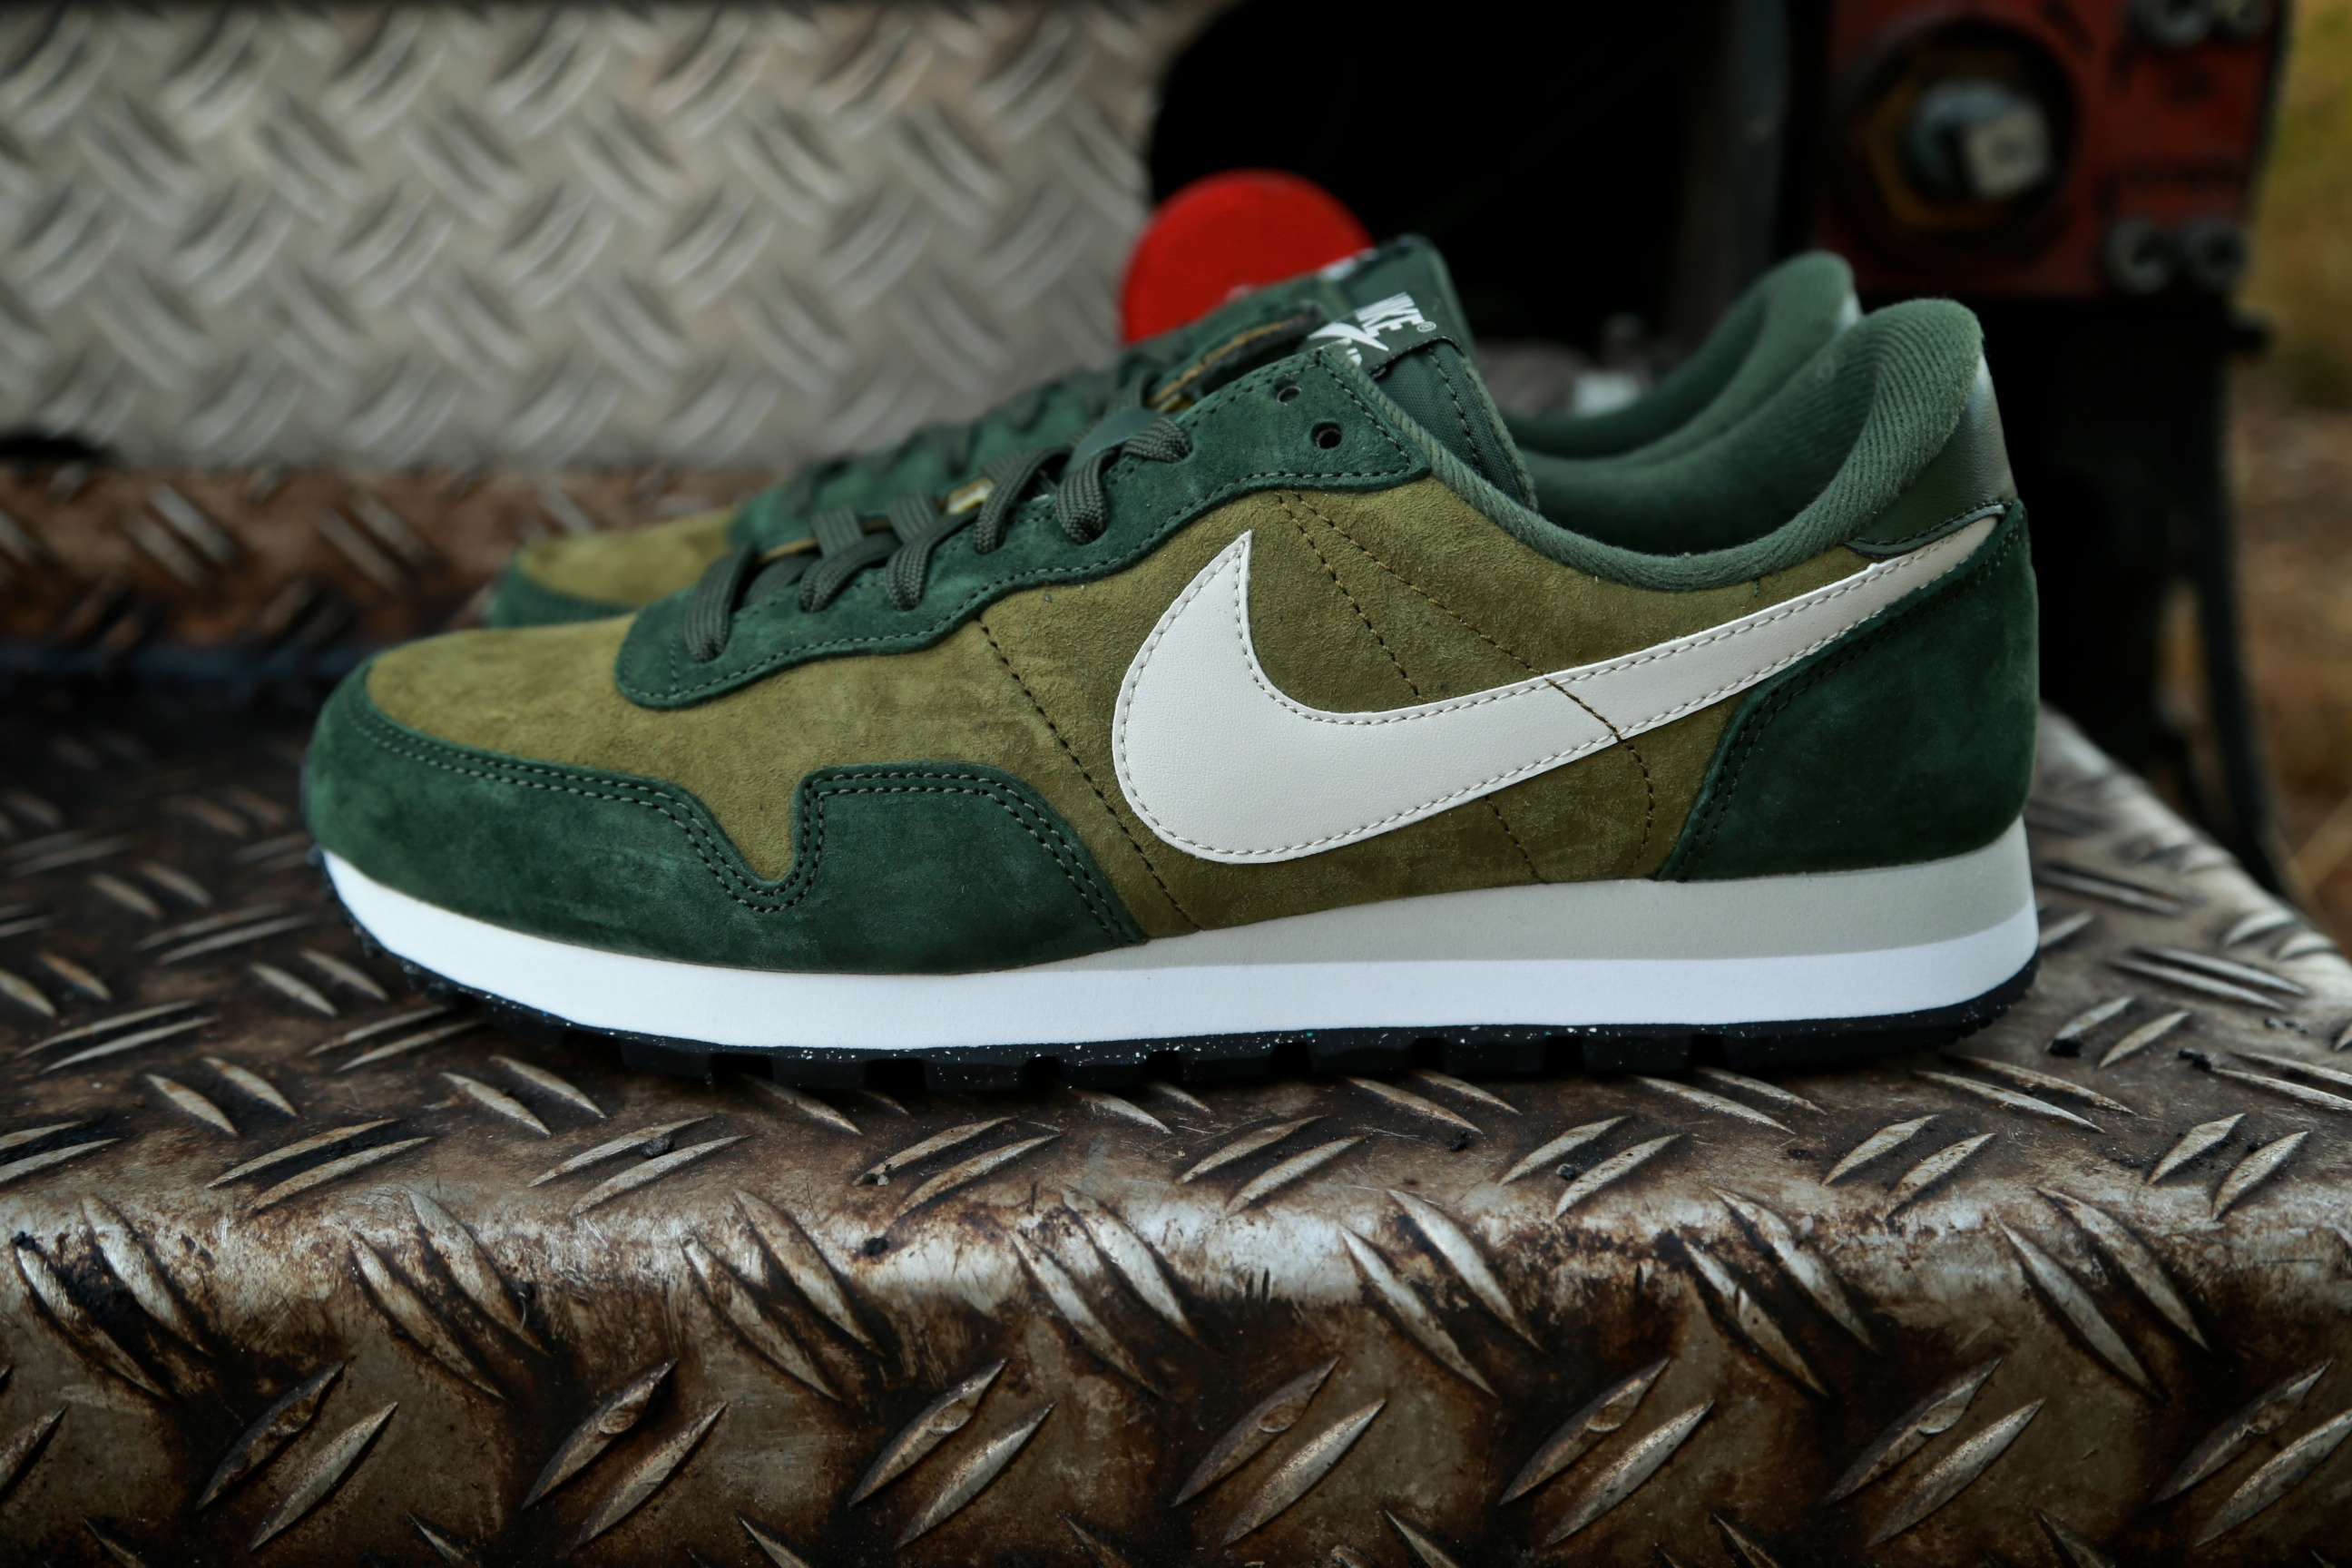 nike air pegasus 83 ltr militia green light bone. Black Bedroom Furniture Sets. Home Design Ideas